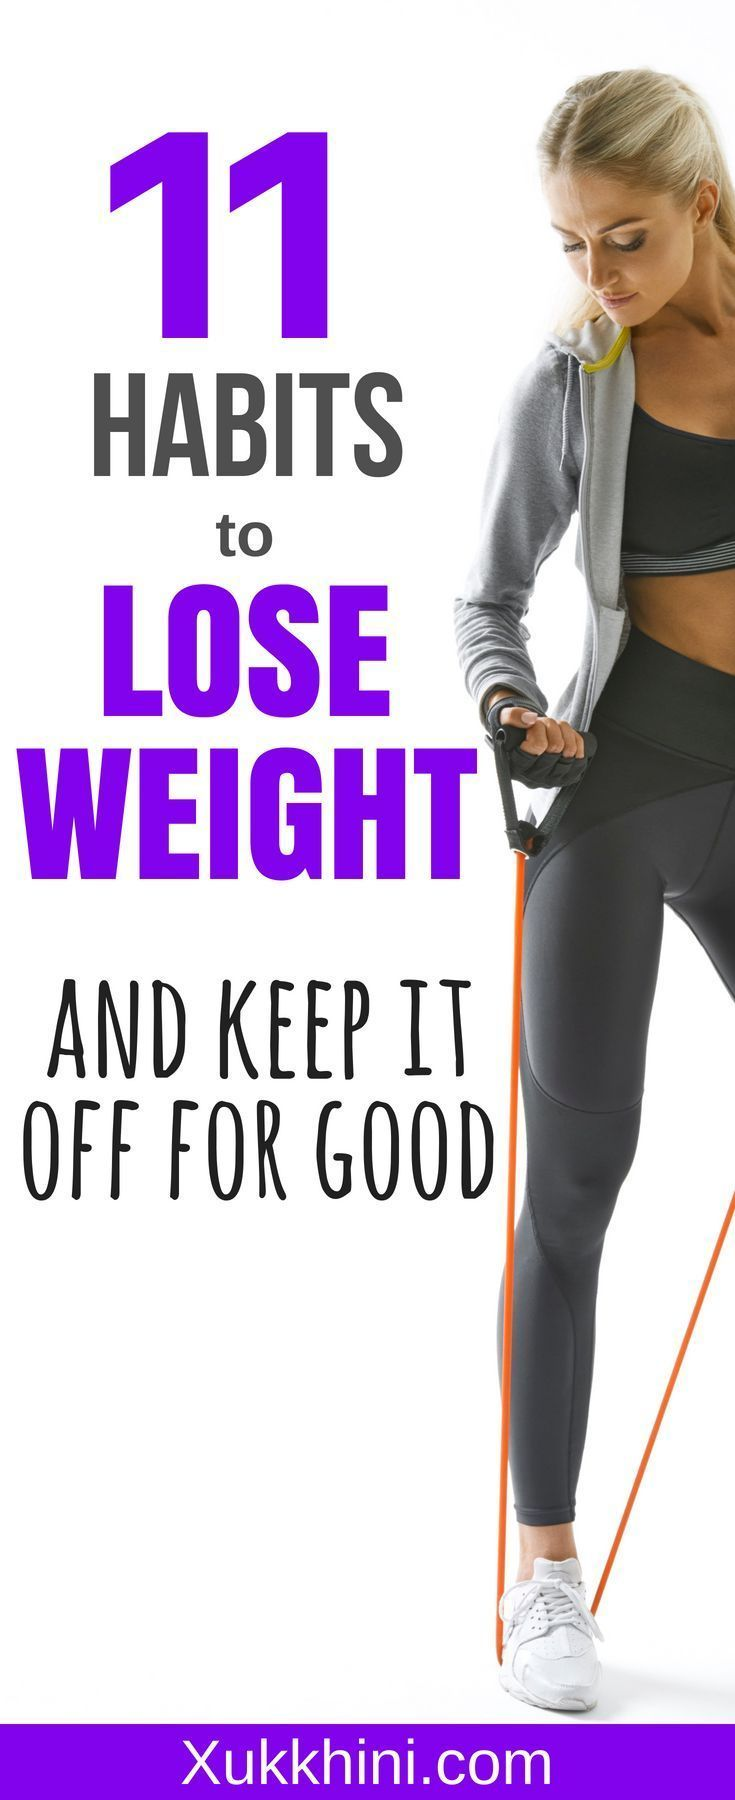 Easy n fast weight loss tips #looseweight <=   simple and easy way to lose weight#healthyfood #fit #fitfam